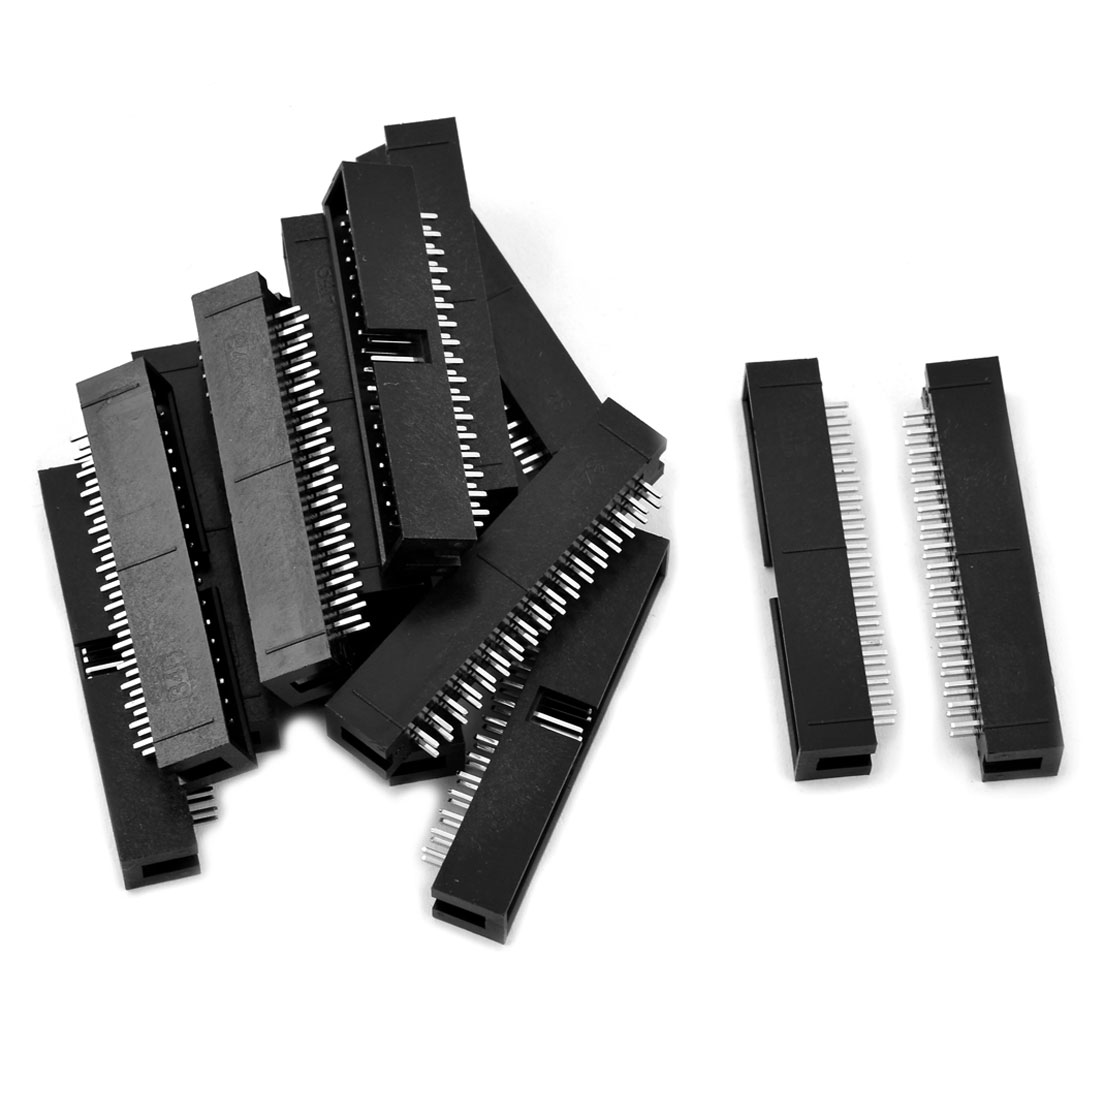 34 Pin Double Row Straight IDC Box Header Connector 2.54mm Pitch 15 Pcs